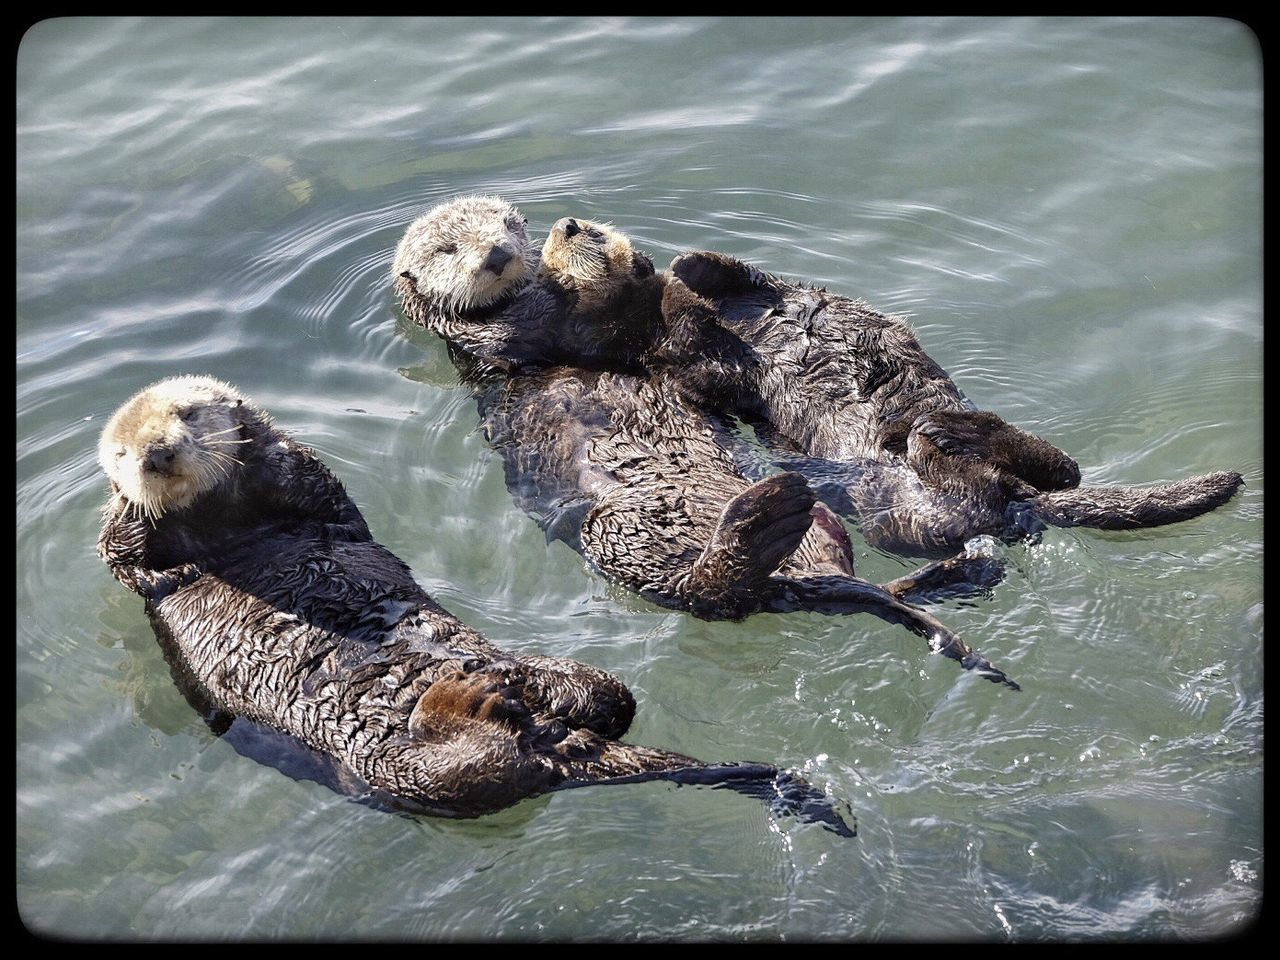 It's a family affair Animal Themes Water Swimming Animals In The Wild Nature Animal Wildlife FUJIFILM X-T1 Otters Morro Bay High Angle View No People Mammal Day Lake Outdoors Togetherness